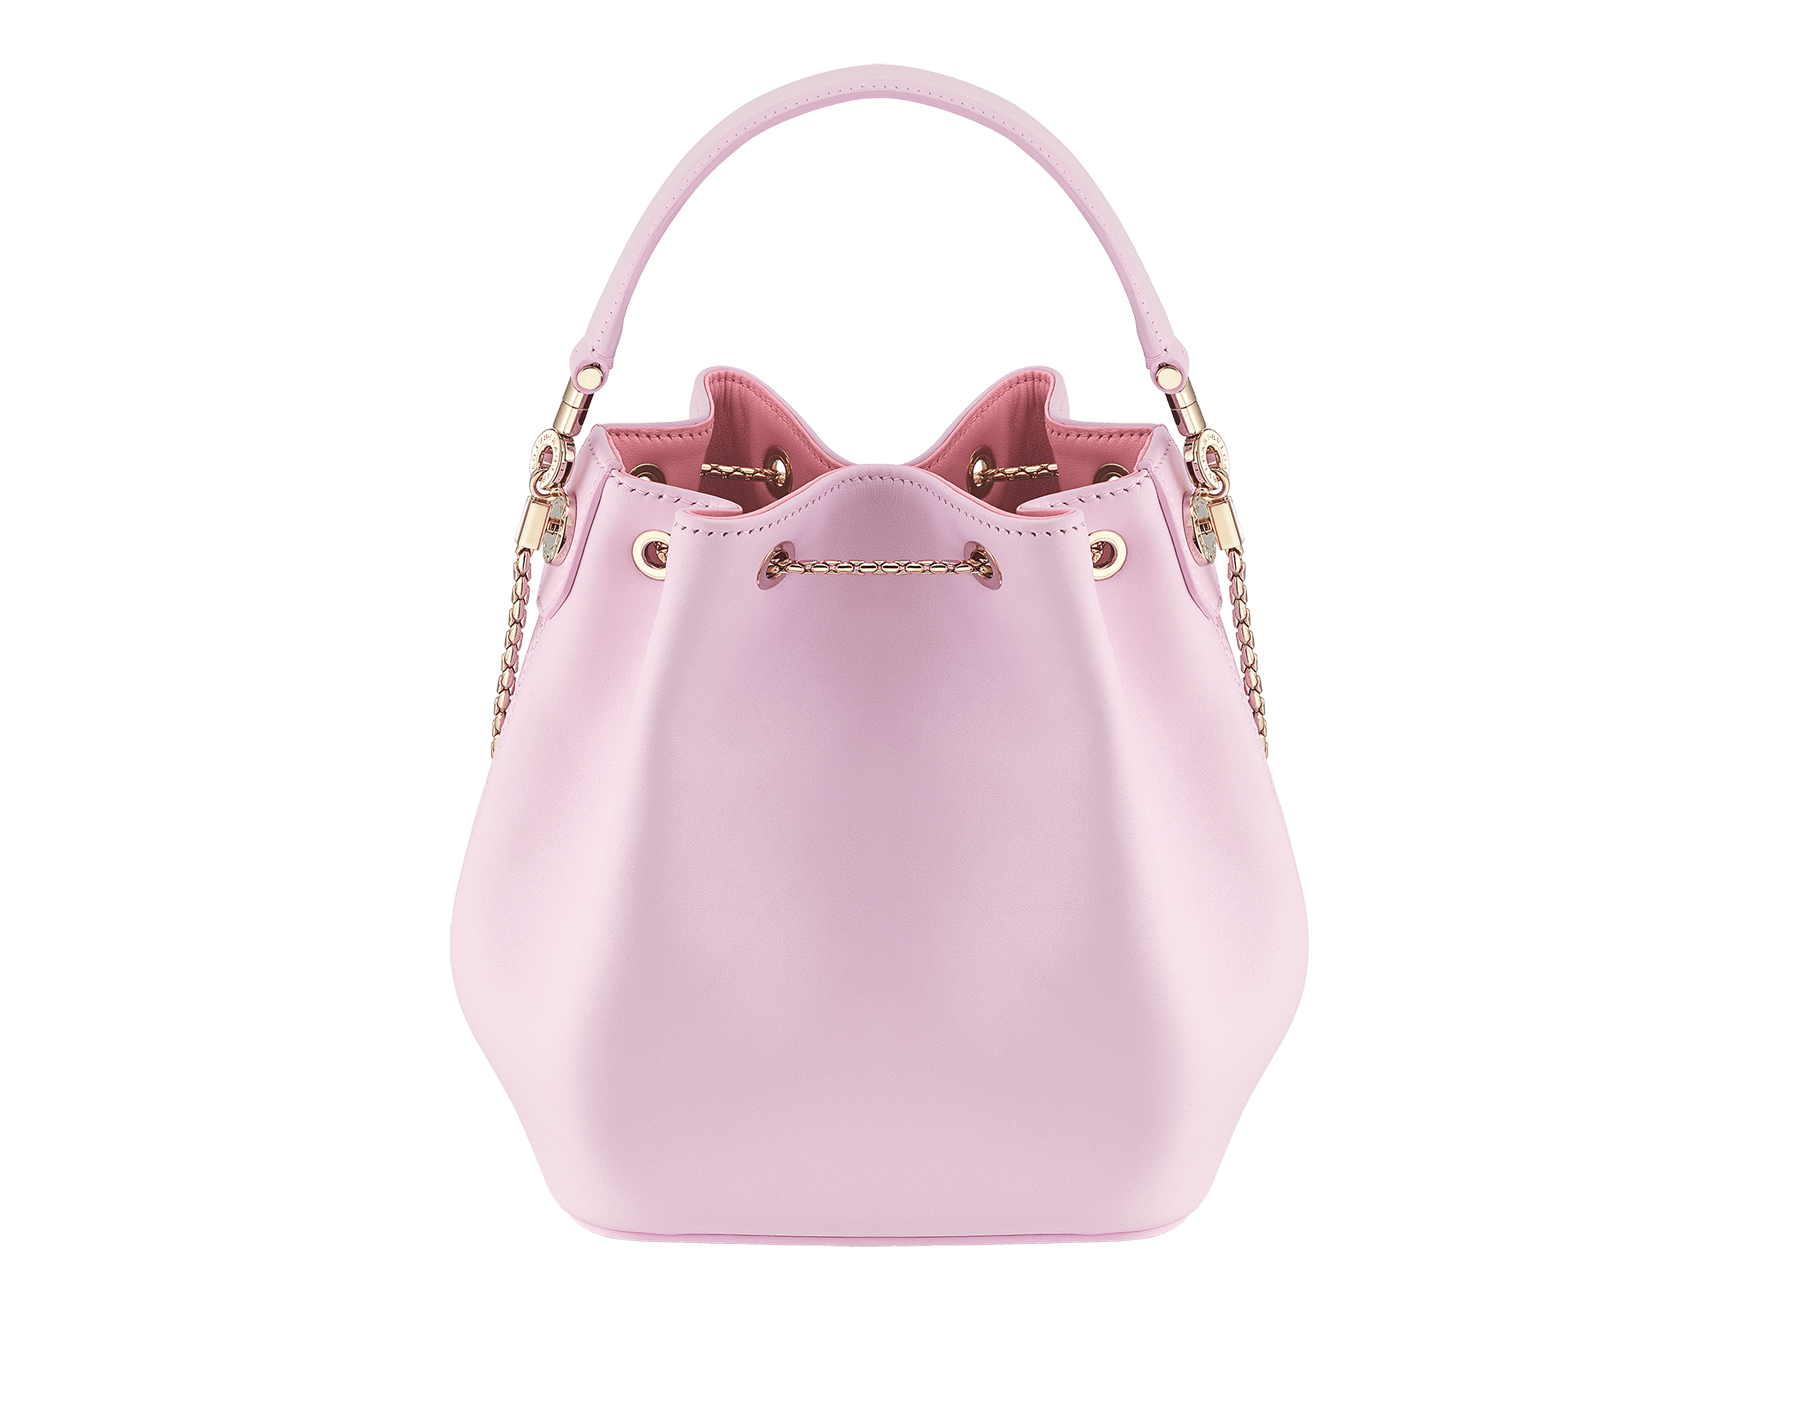 Serpenti Forever bucket in rosa di francia smooth calf leather and a flamingo quartz inner lining. Hardware in light gold plated brass and snakehead closure in black and white enamel, with eyes in black onyx. 288769 image 3